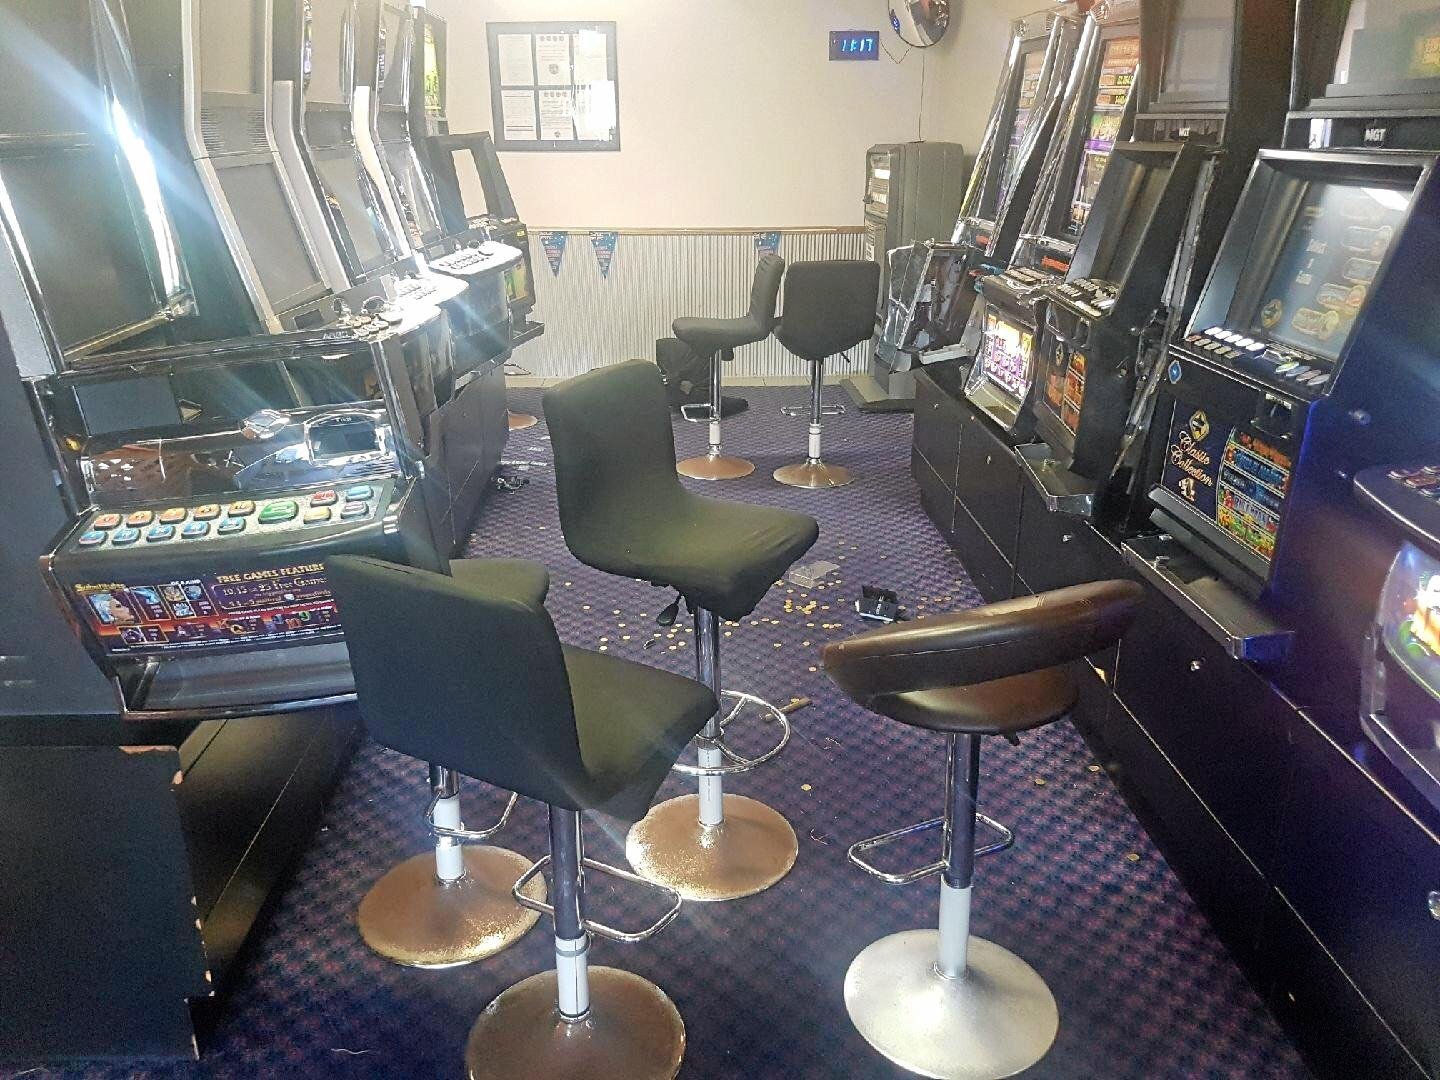 Eight pokie machines were damaged in a break-in at the Moranbah Miners League Club on Saturday